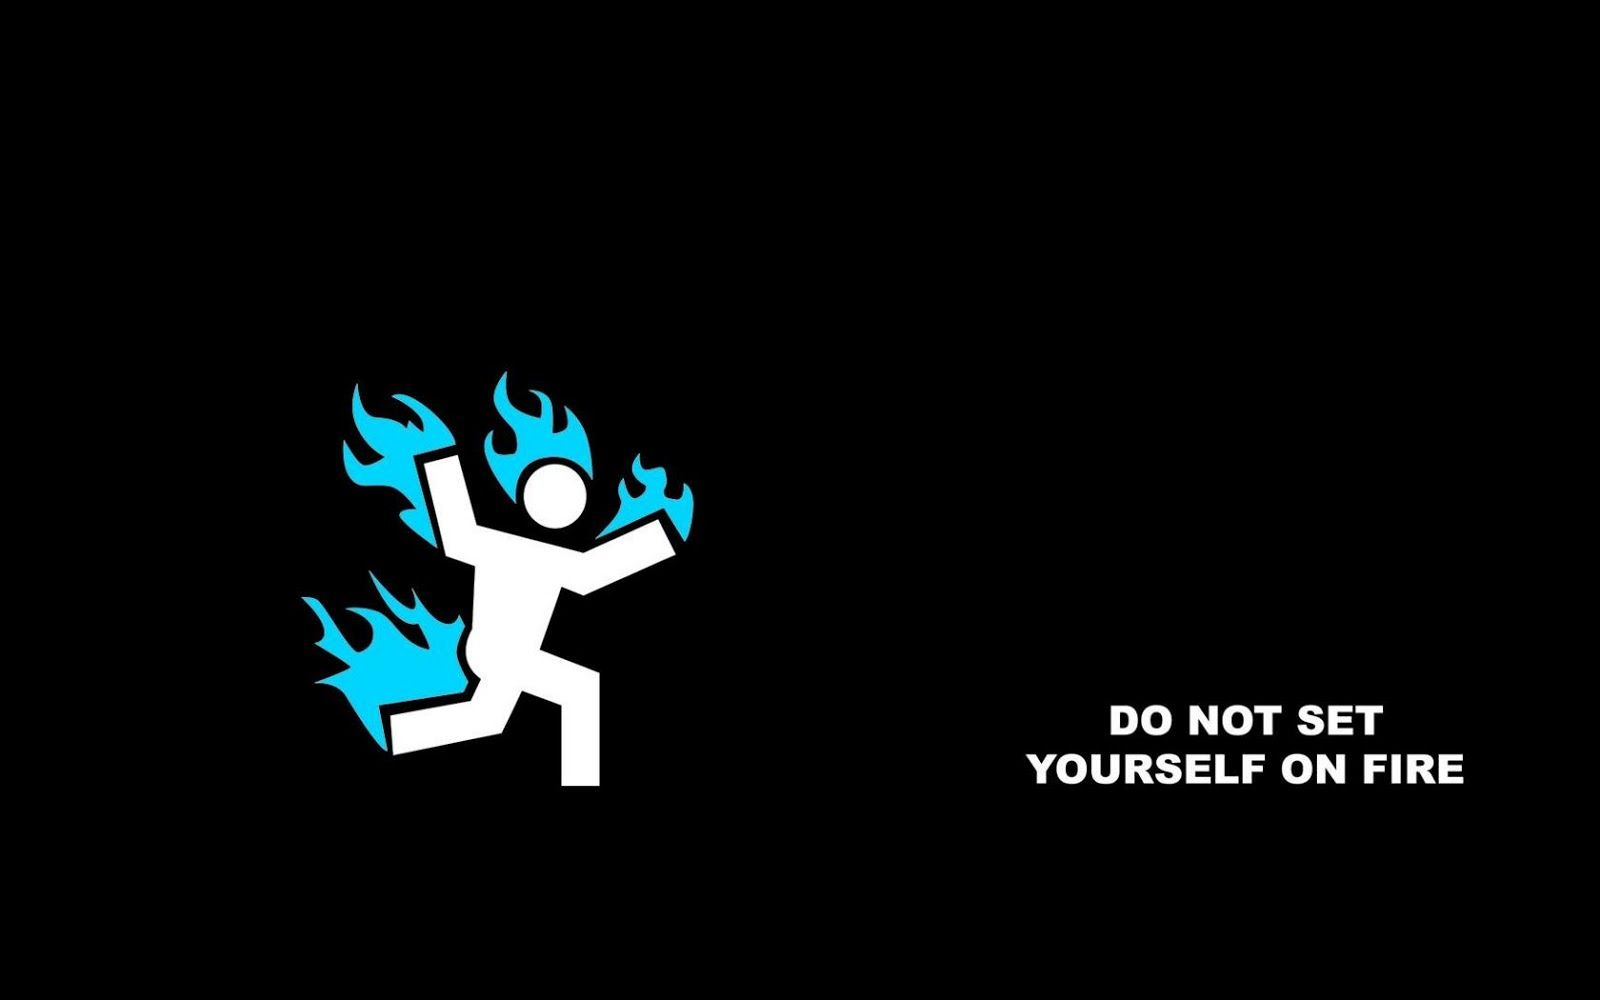 Screensavers and Funny Funny Wallpapers HDwallpapers